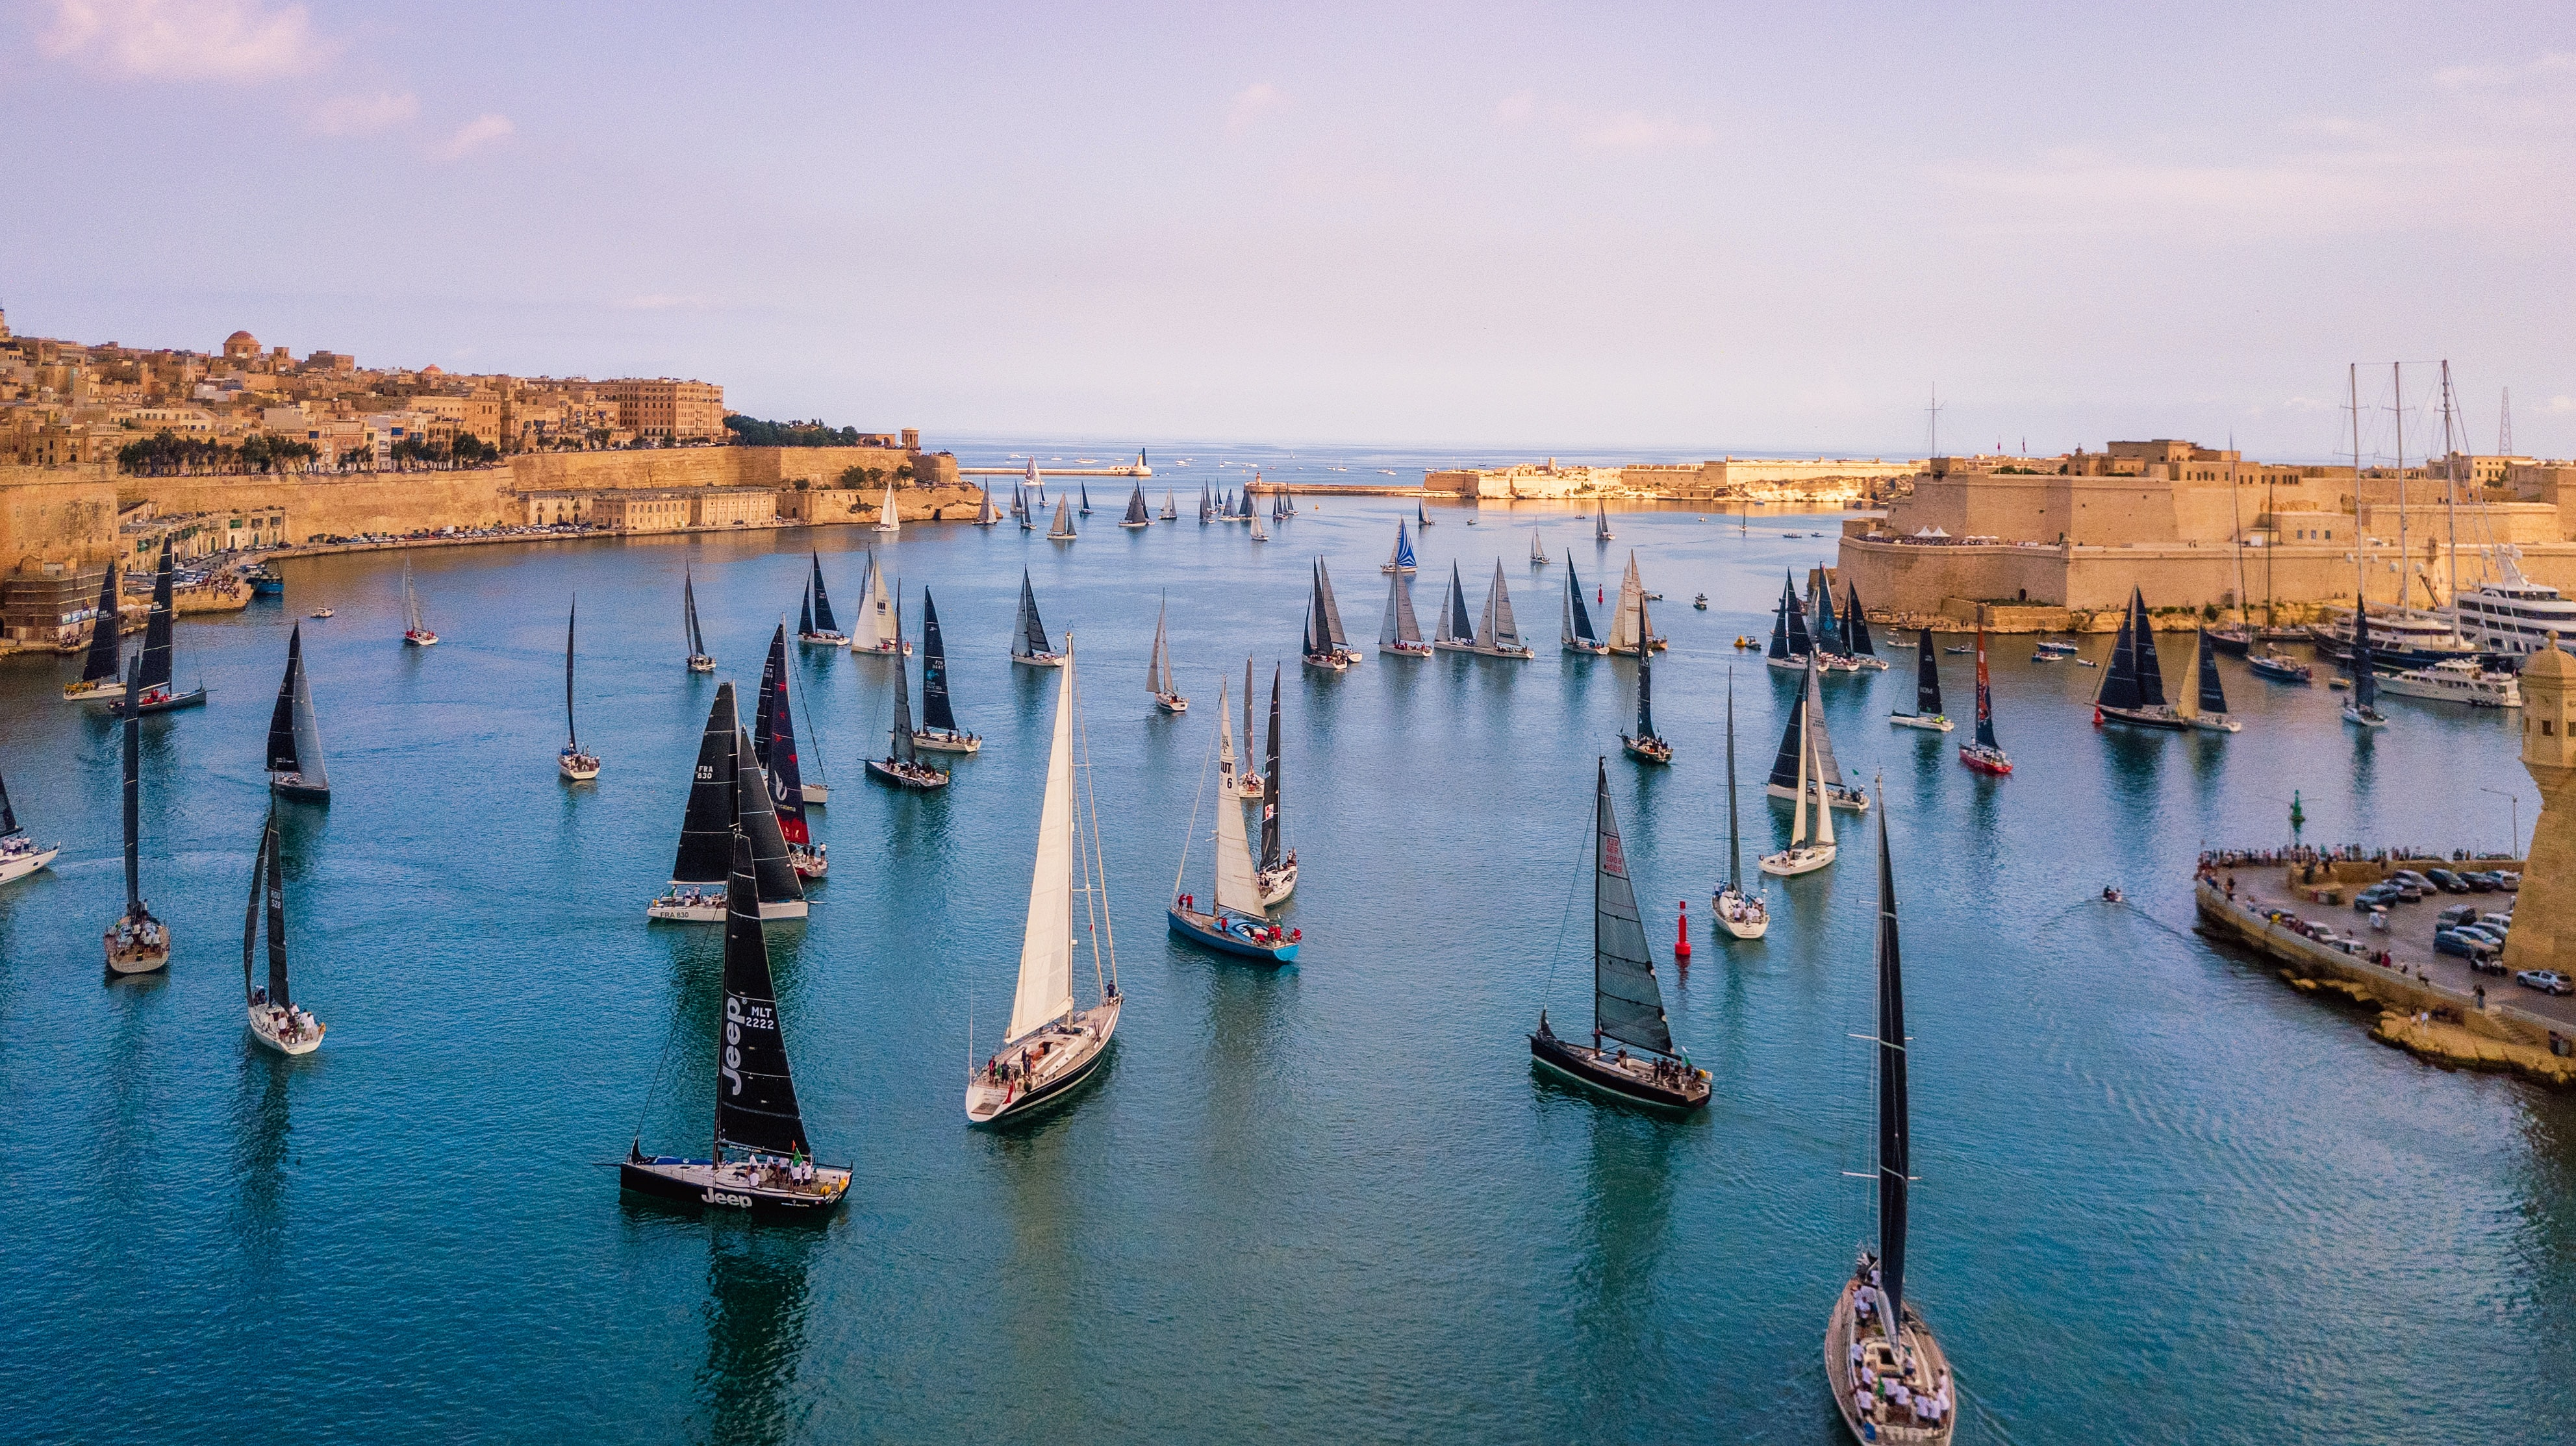 Sailing yachts in a harbor of Malta